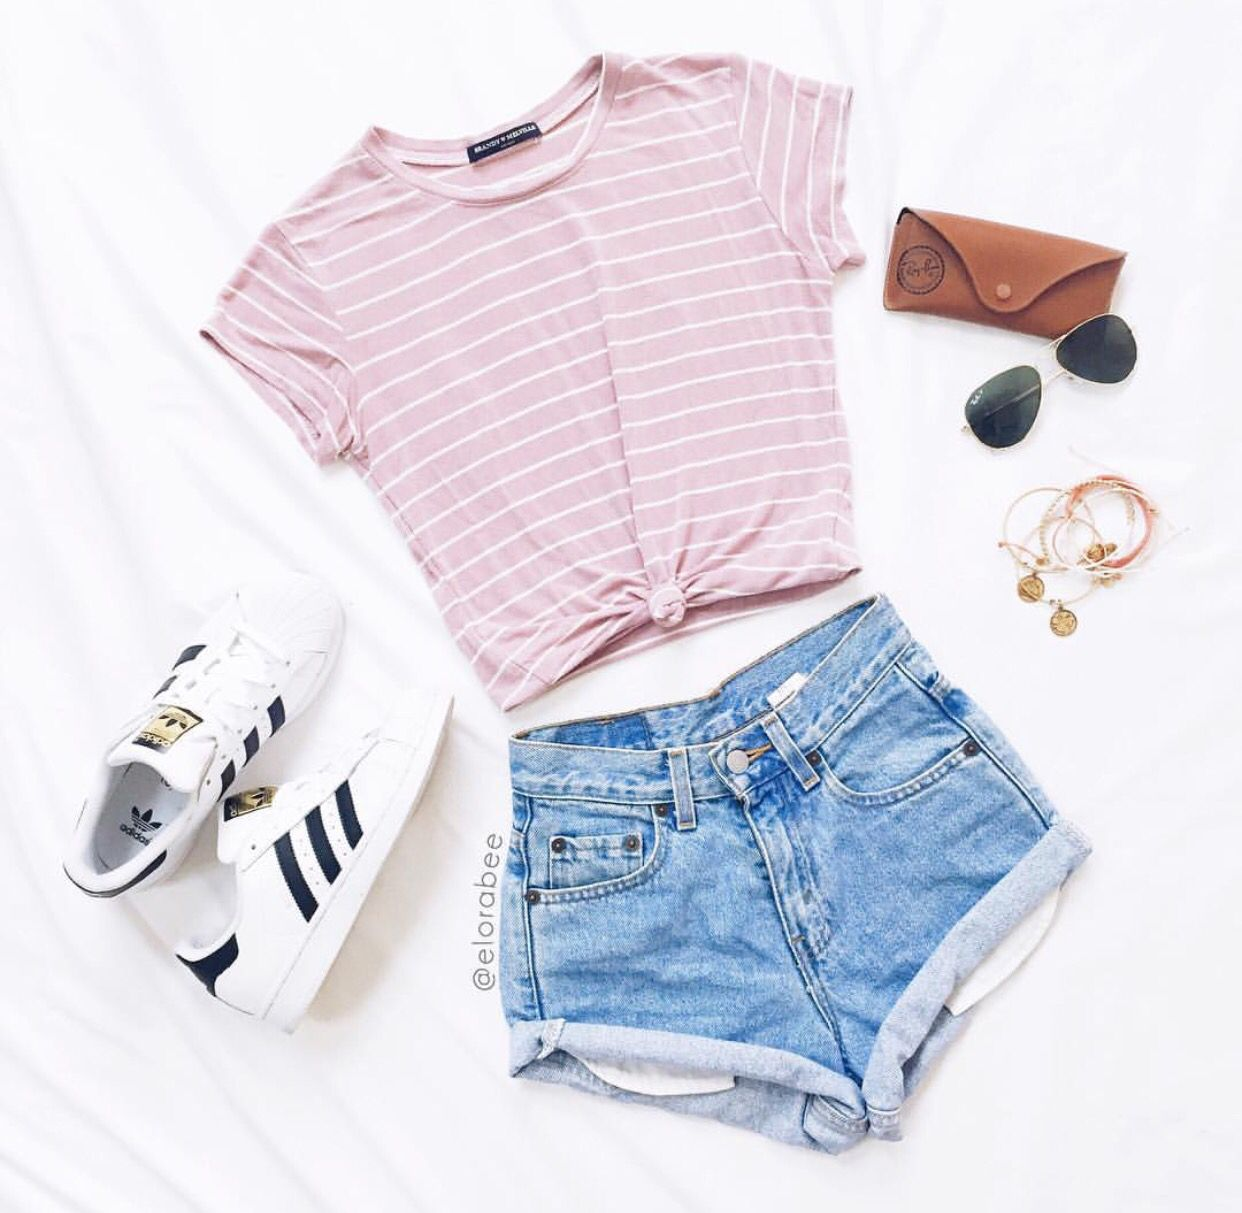 Elorabee style pinterest clothes and summer